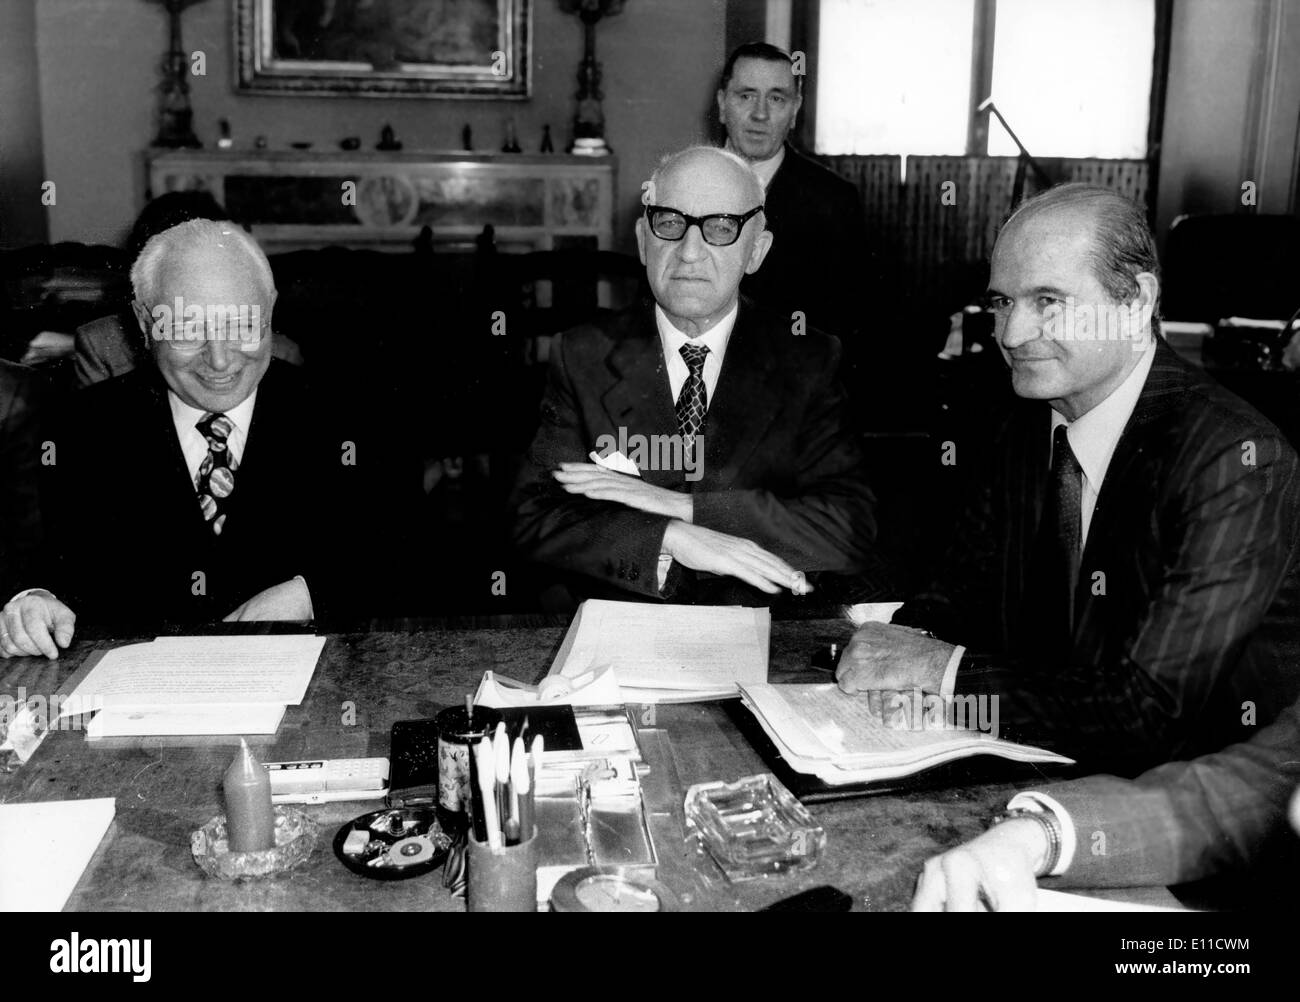 Mar 11, 1977; Rome, Italy; The rise of Italian llire against the weekend U.S. dollar is the subject of the meeting of top bankers at the Ministry of Finance in Rome, and the effect it will have on the Italian economy. The picture shows (from L-R) MARIO ERCOLANI, Vice director of the of the Bank of Italy, PAOLO BAFFI, Governor of the Bank of Italy and GAETANO STAMMI, Minister of the Treasury. - Stock Image